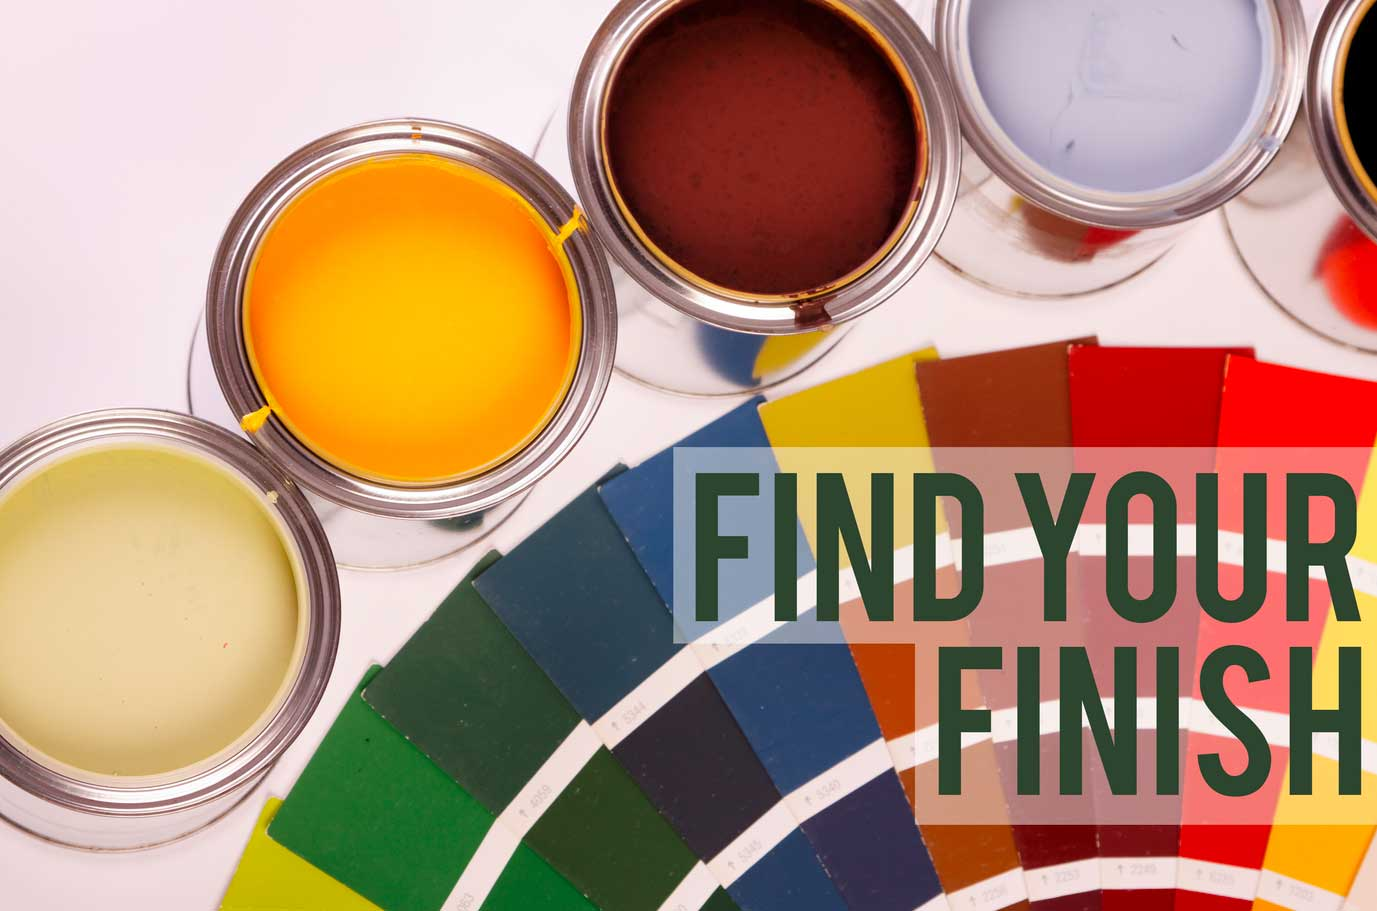 Find Your Finish